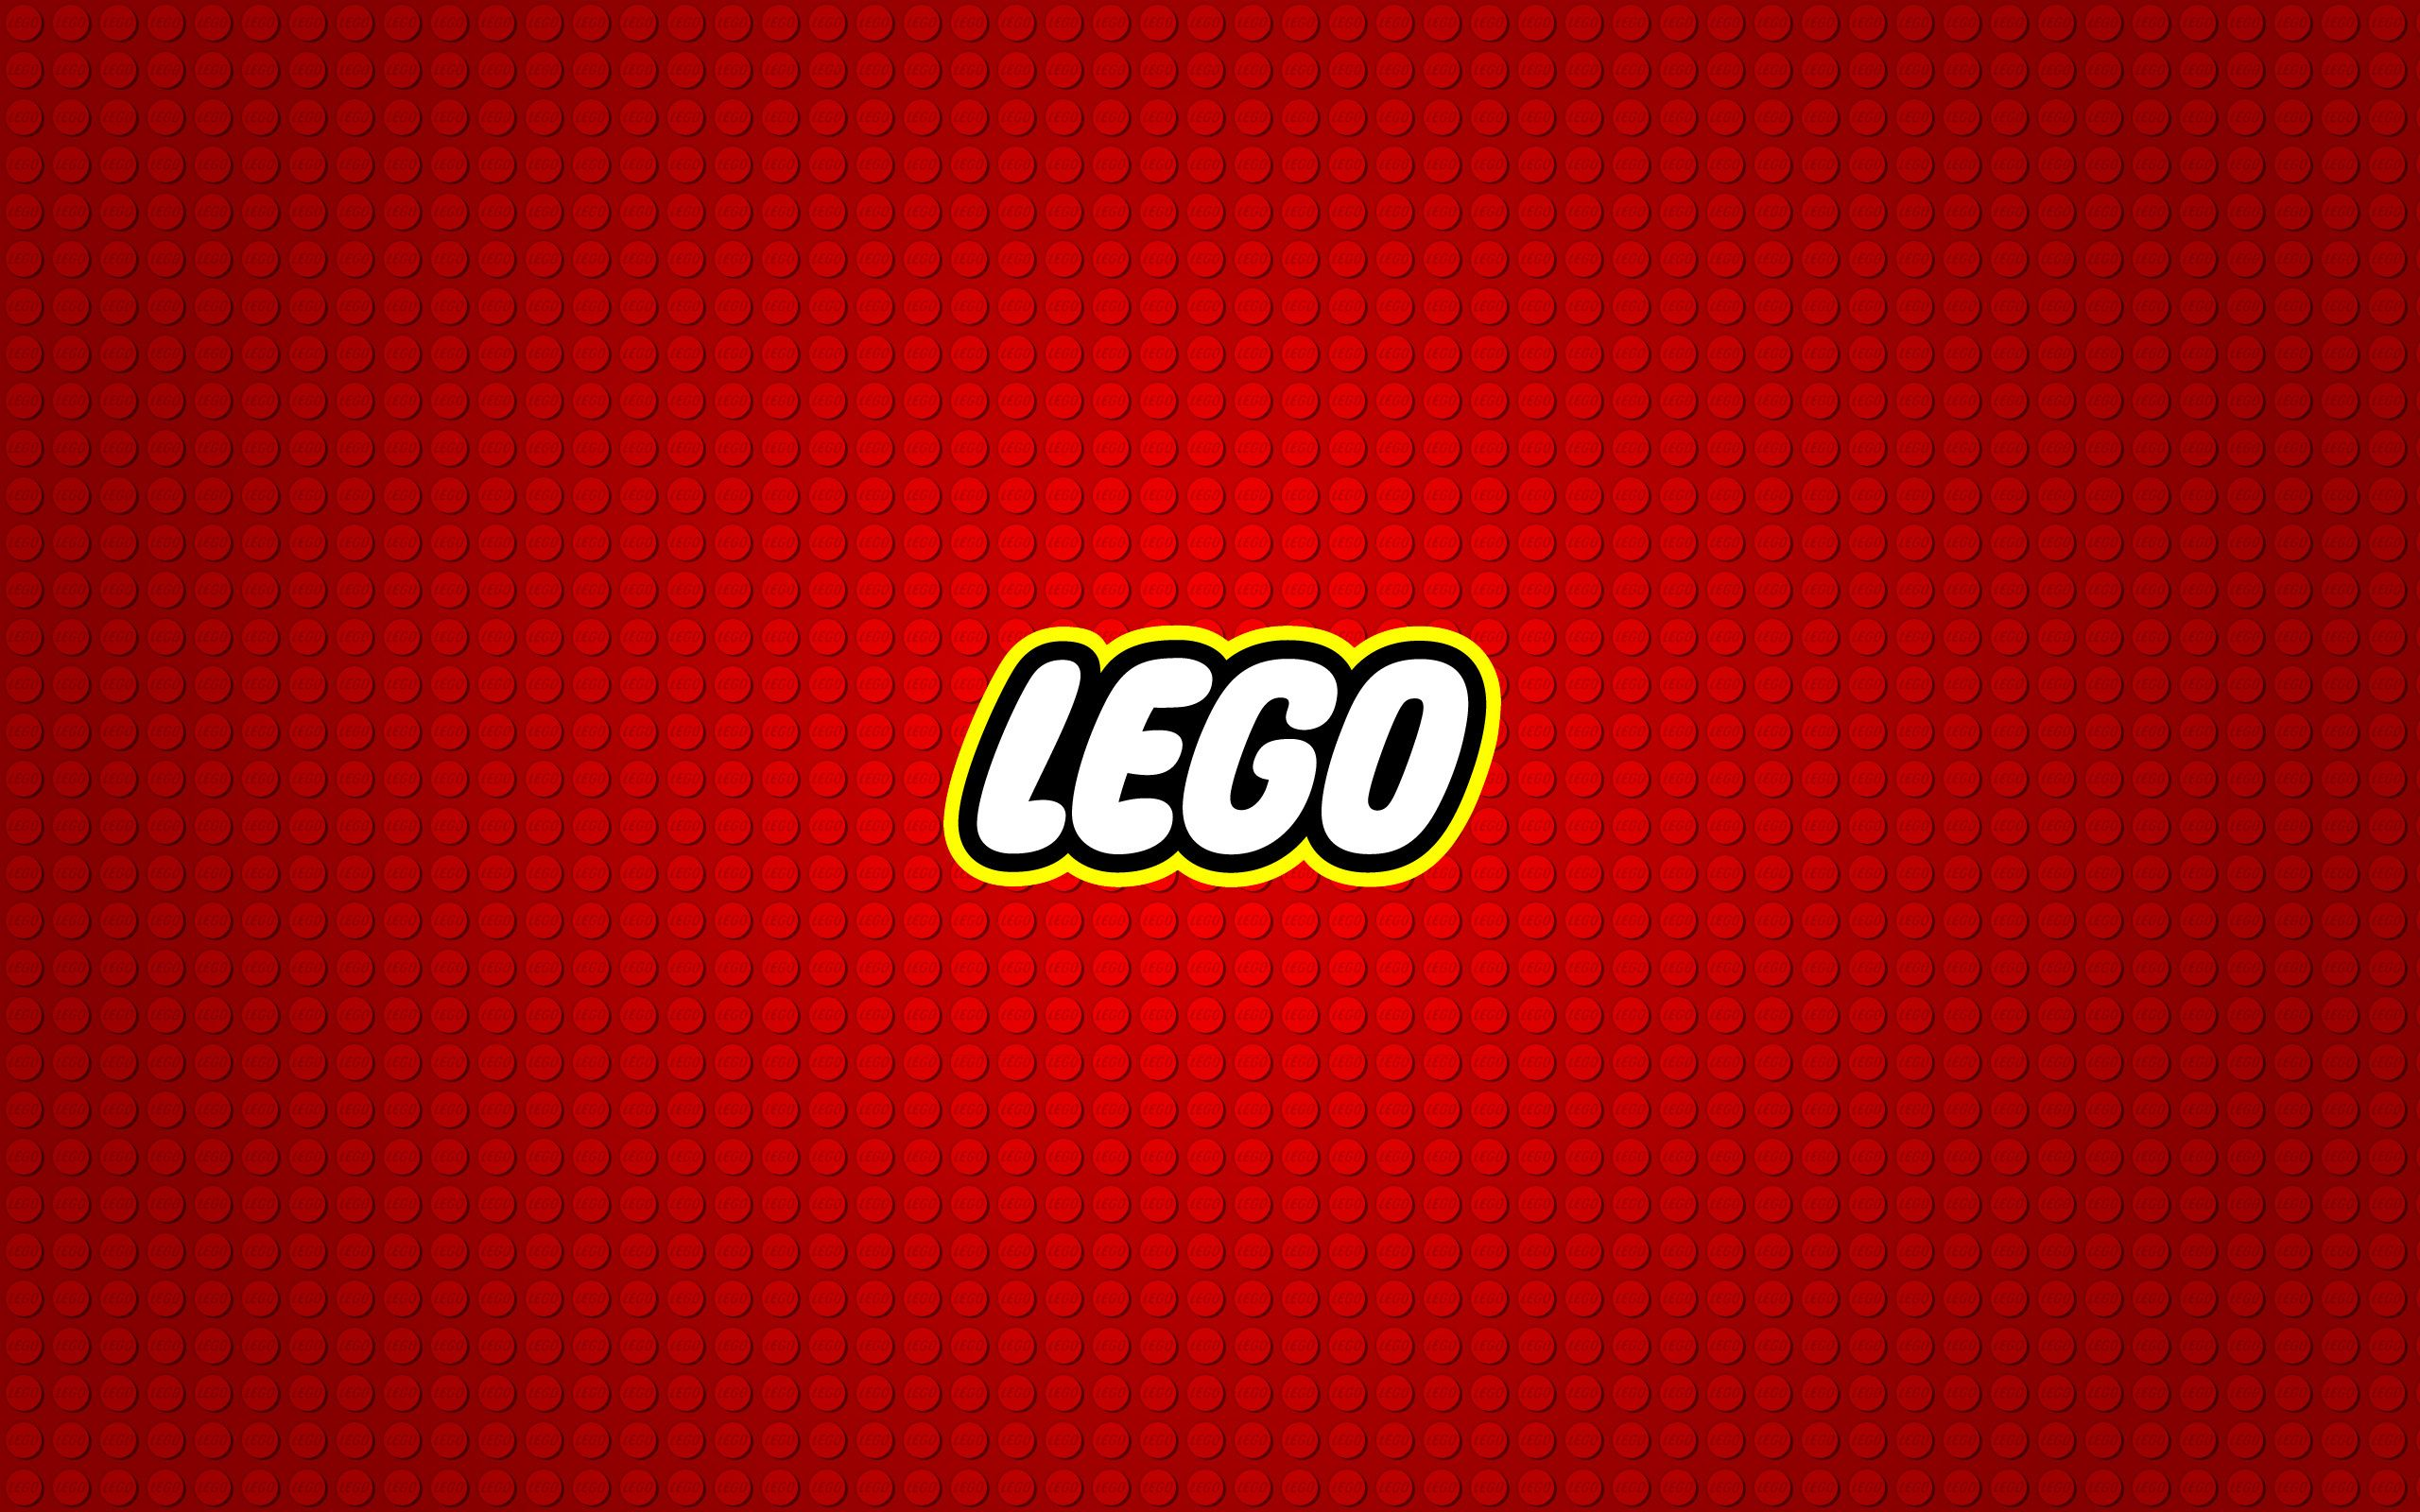 140 lego hd wallpapers backgrounds wallpaper abyss best 140 lego hd wallpapers backgrounds wallpaper abyss voltagebd Gallery